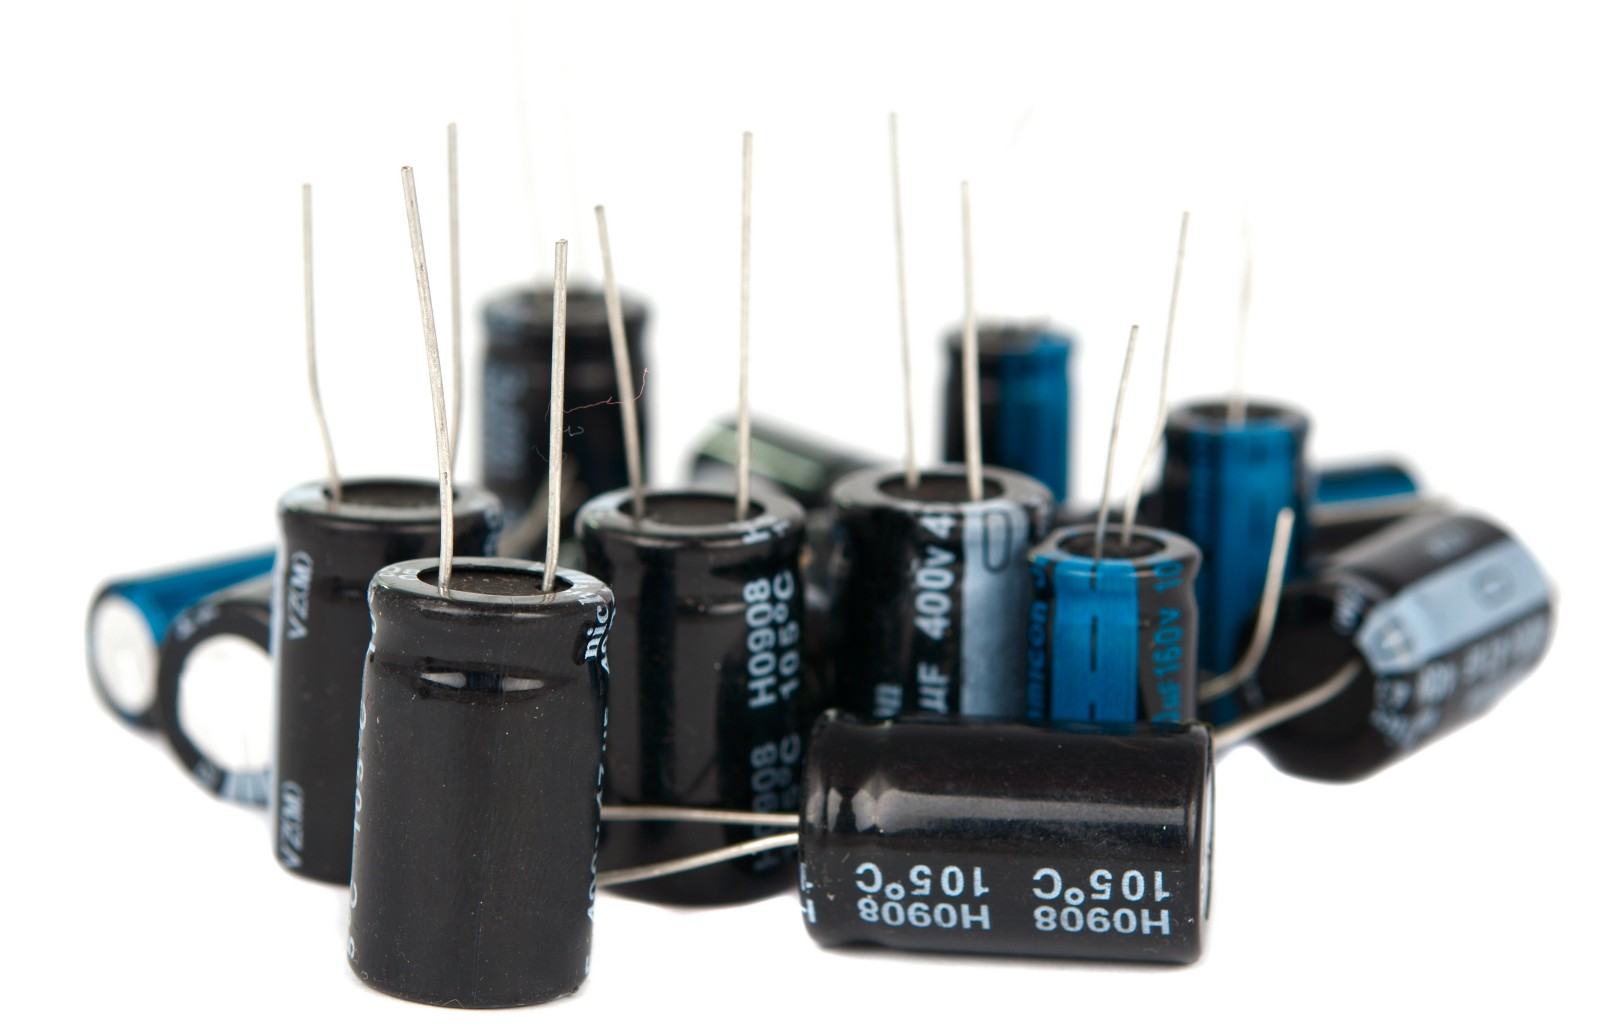 Bypass Capacitors On Placement Supplyframe Hardware Medium Filter Capacitor Circuit To Out Ac Signals The Ability Of A Reduce Noise And Stabilize Power Supply In Depends Combination Factors